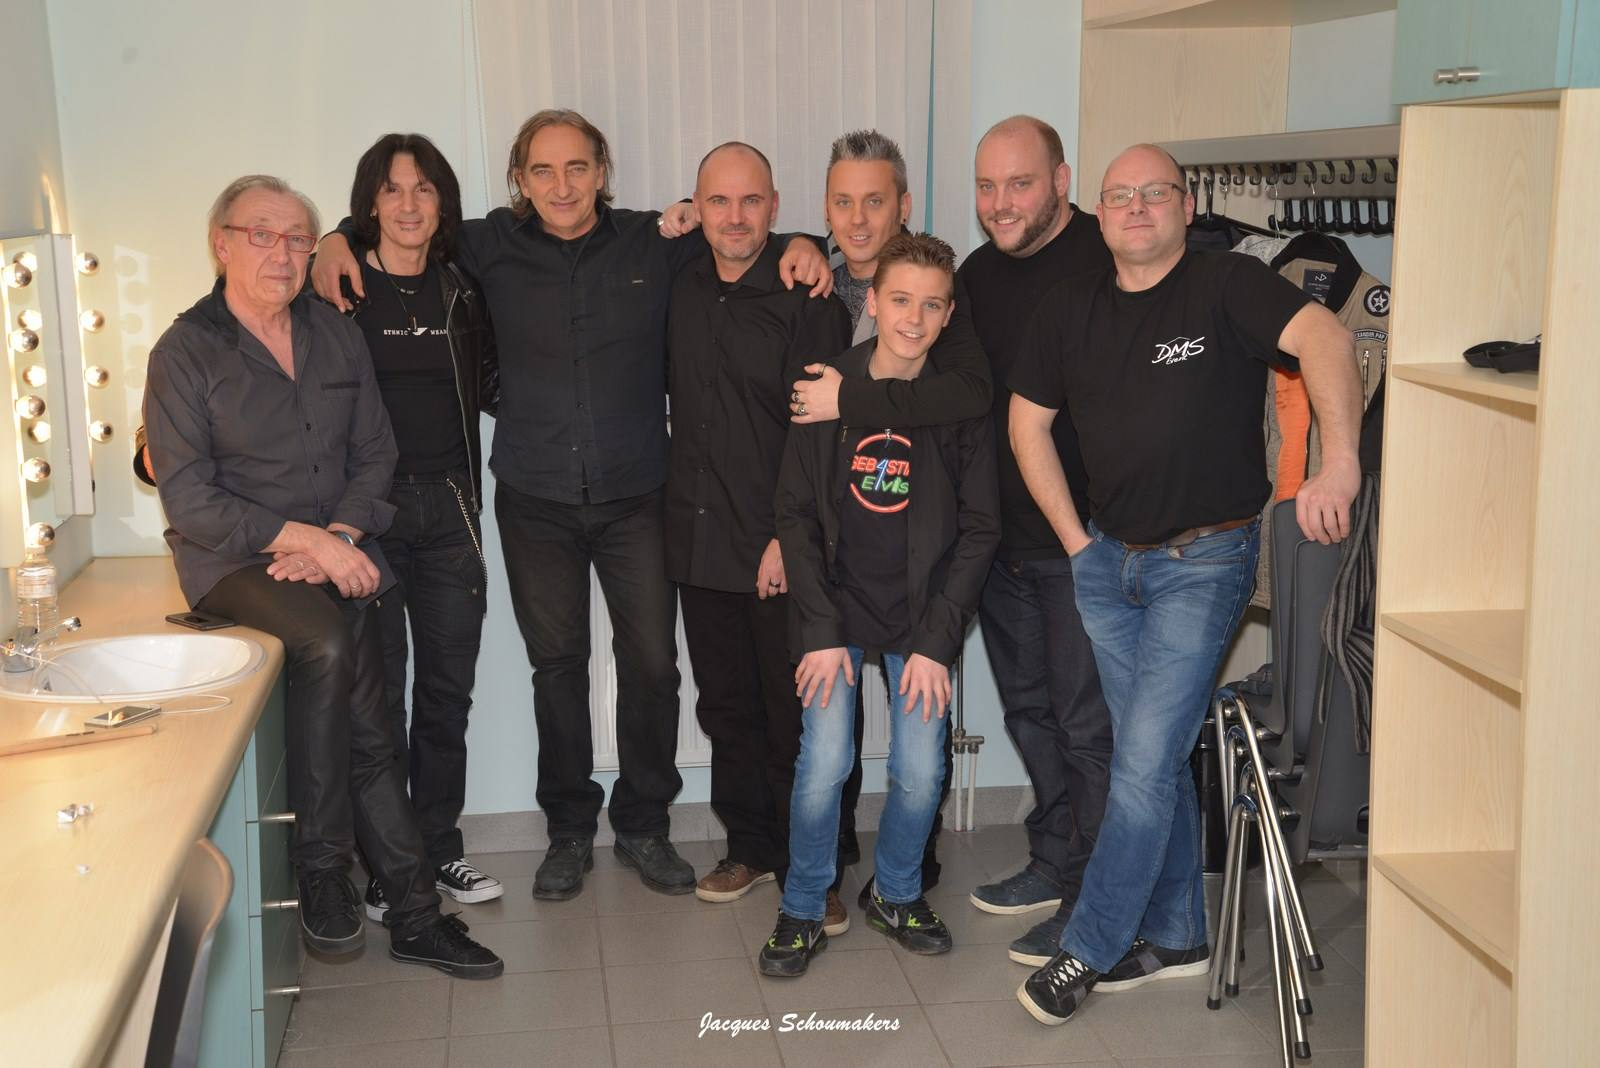 Sebastian-for-elvis-centre-culturel-andenne-jacques-schoumakers-facebook-04